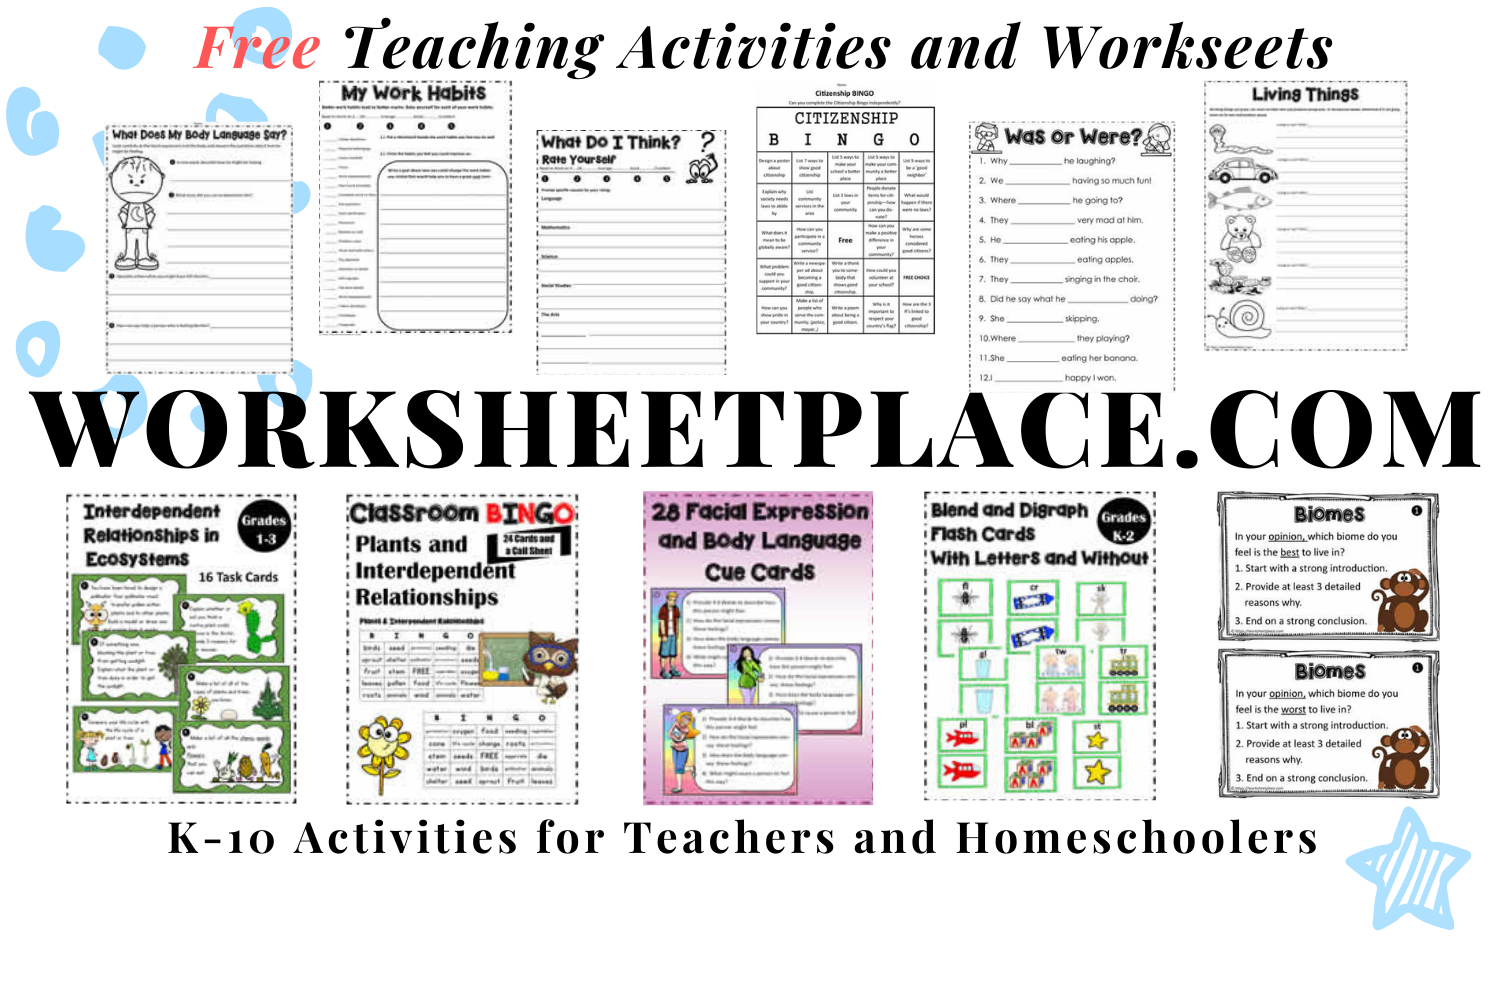 Are You Looking For Free Teaching Activities And Free